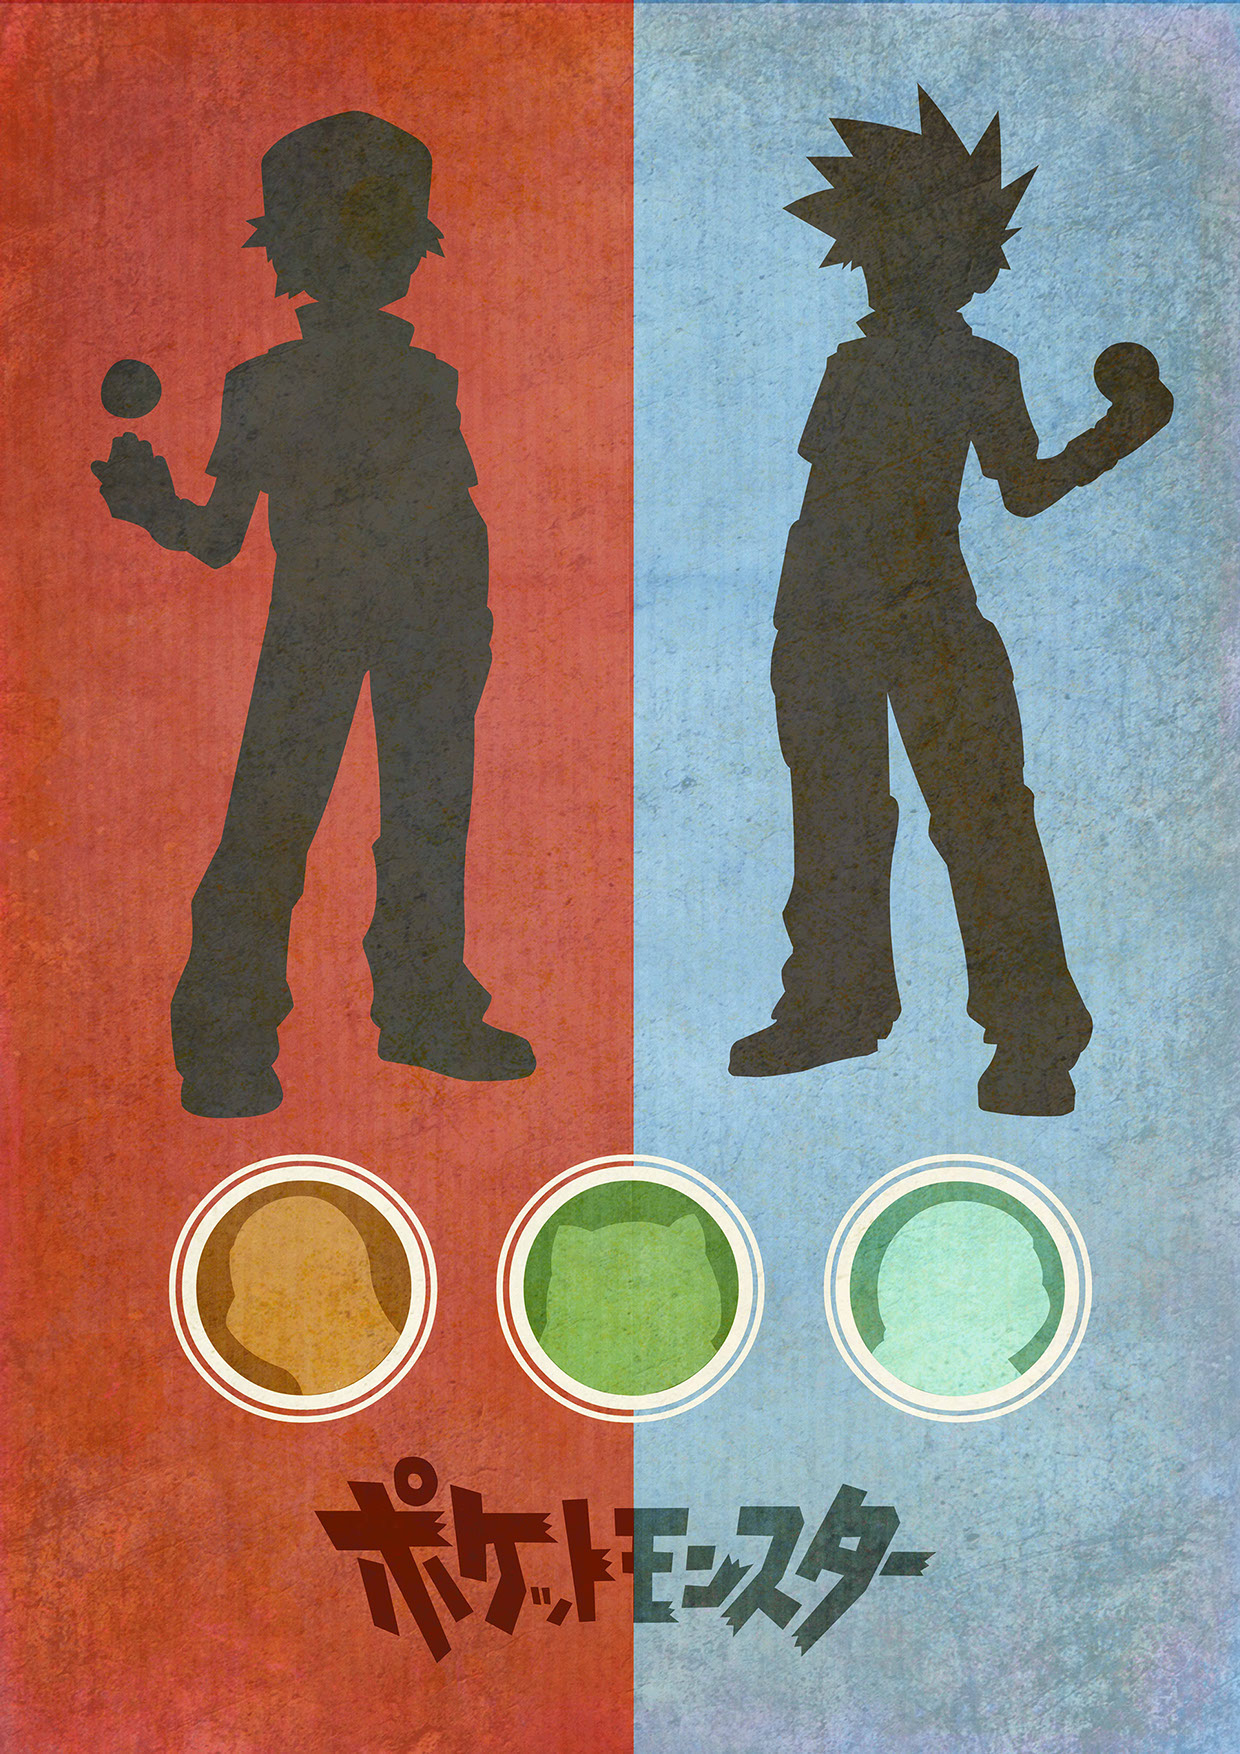 Pokemon Red & Blue by Chris Minney